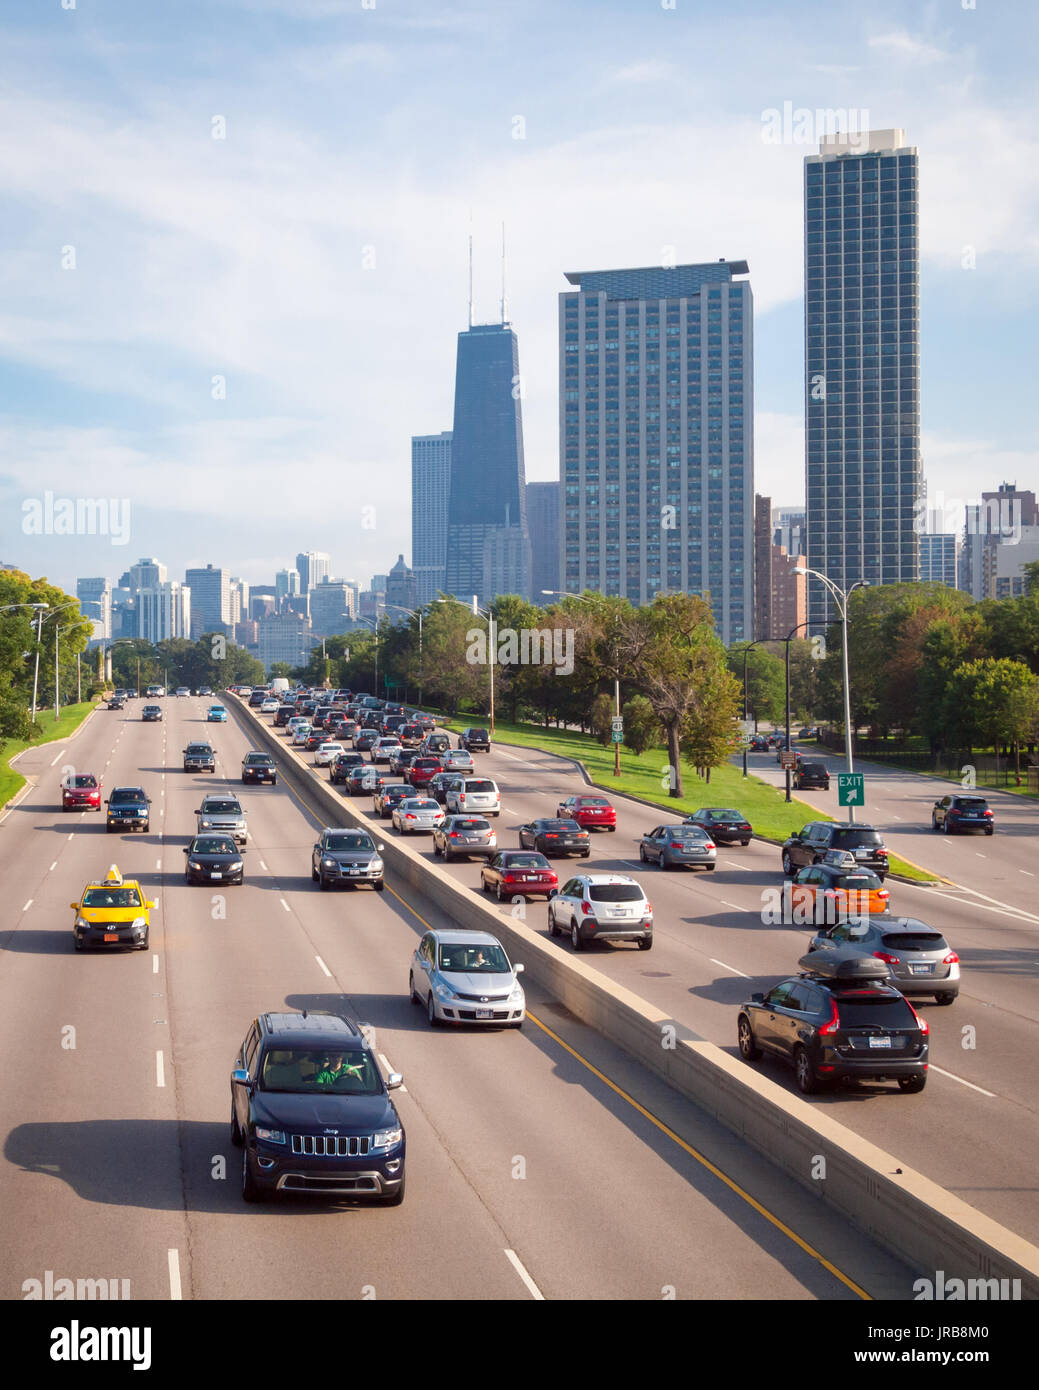 A view of the car traffic on North Lake Shore Drive and the Chicago skyline, including the John Hancock Center. - Stock Image